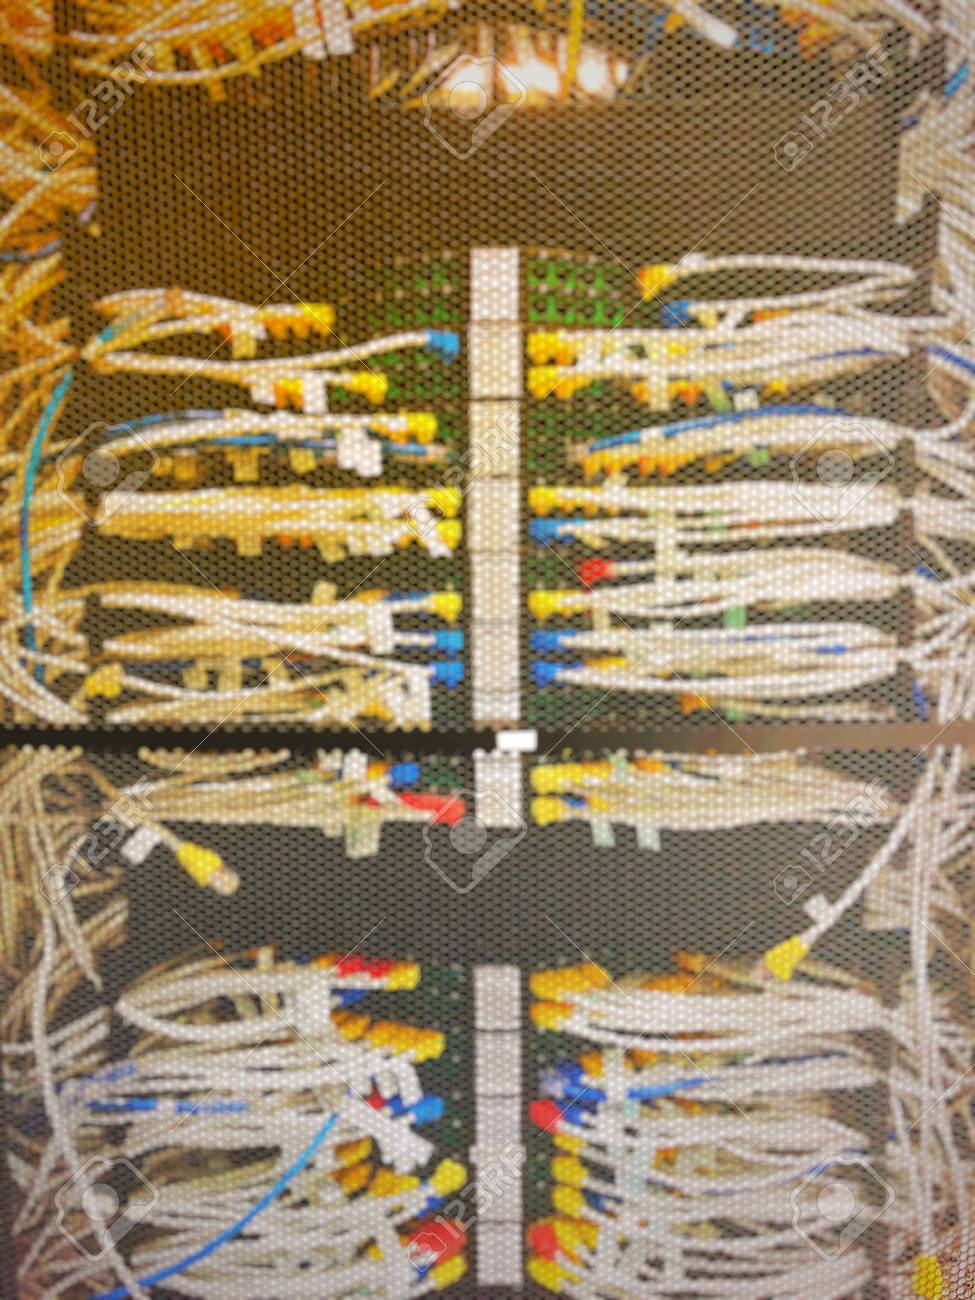 Blurred Of Complicated And Mess LAN Cable Wiring And Networking ...